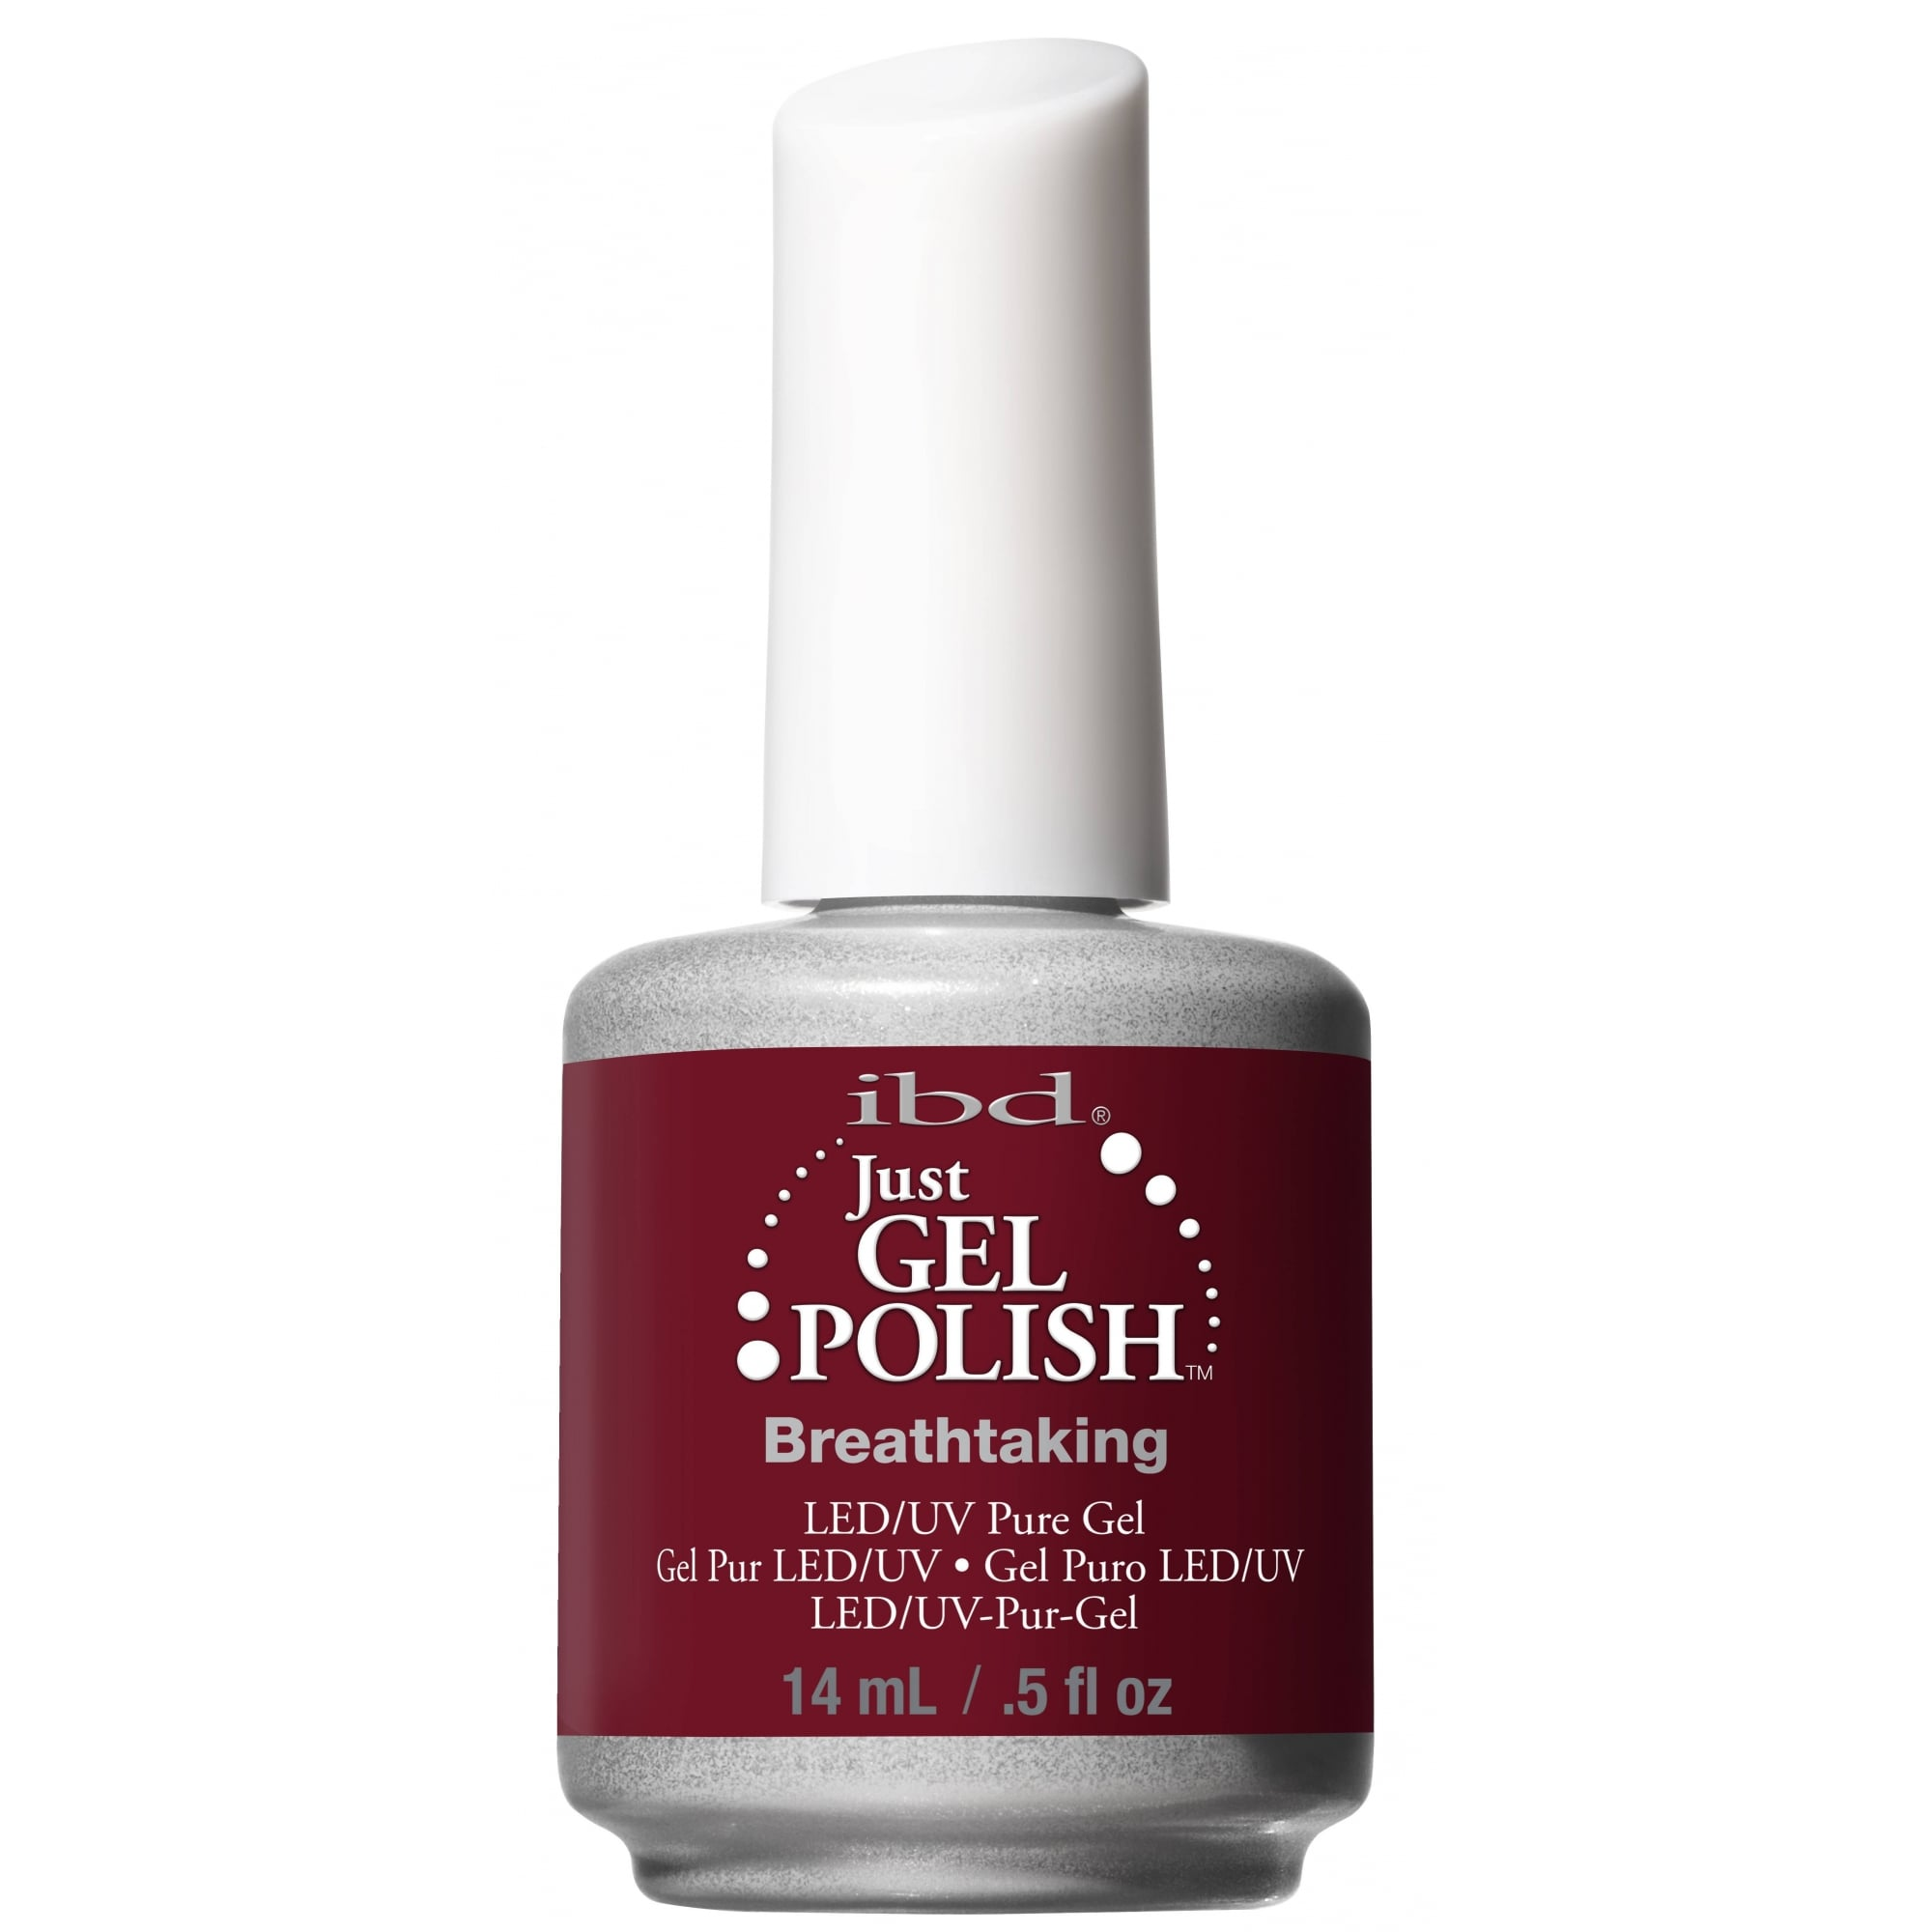 IBD Pure LED & UV Just Gel Polish - Breathtaking 14ml